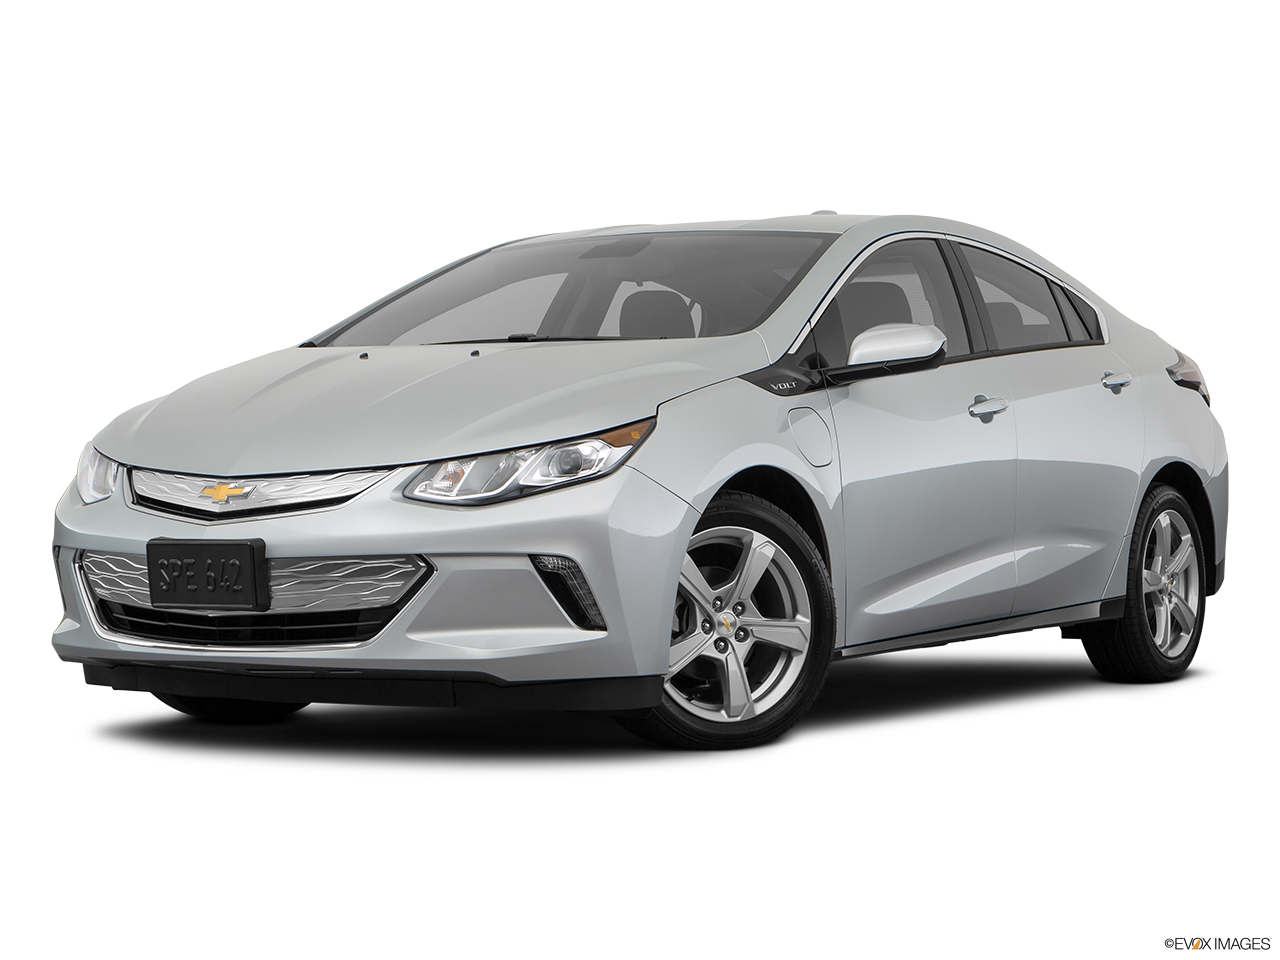 Three quart view of the Chevrolet Volt